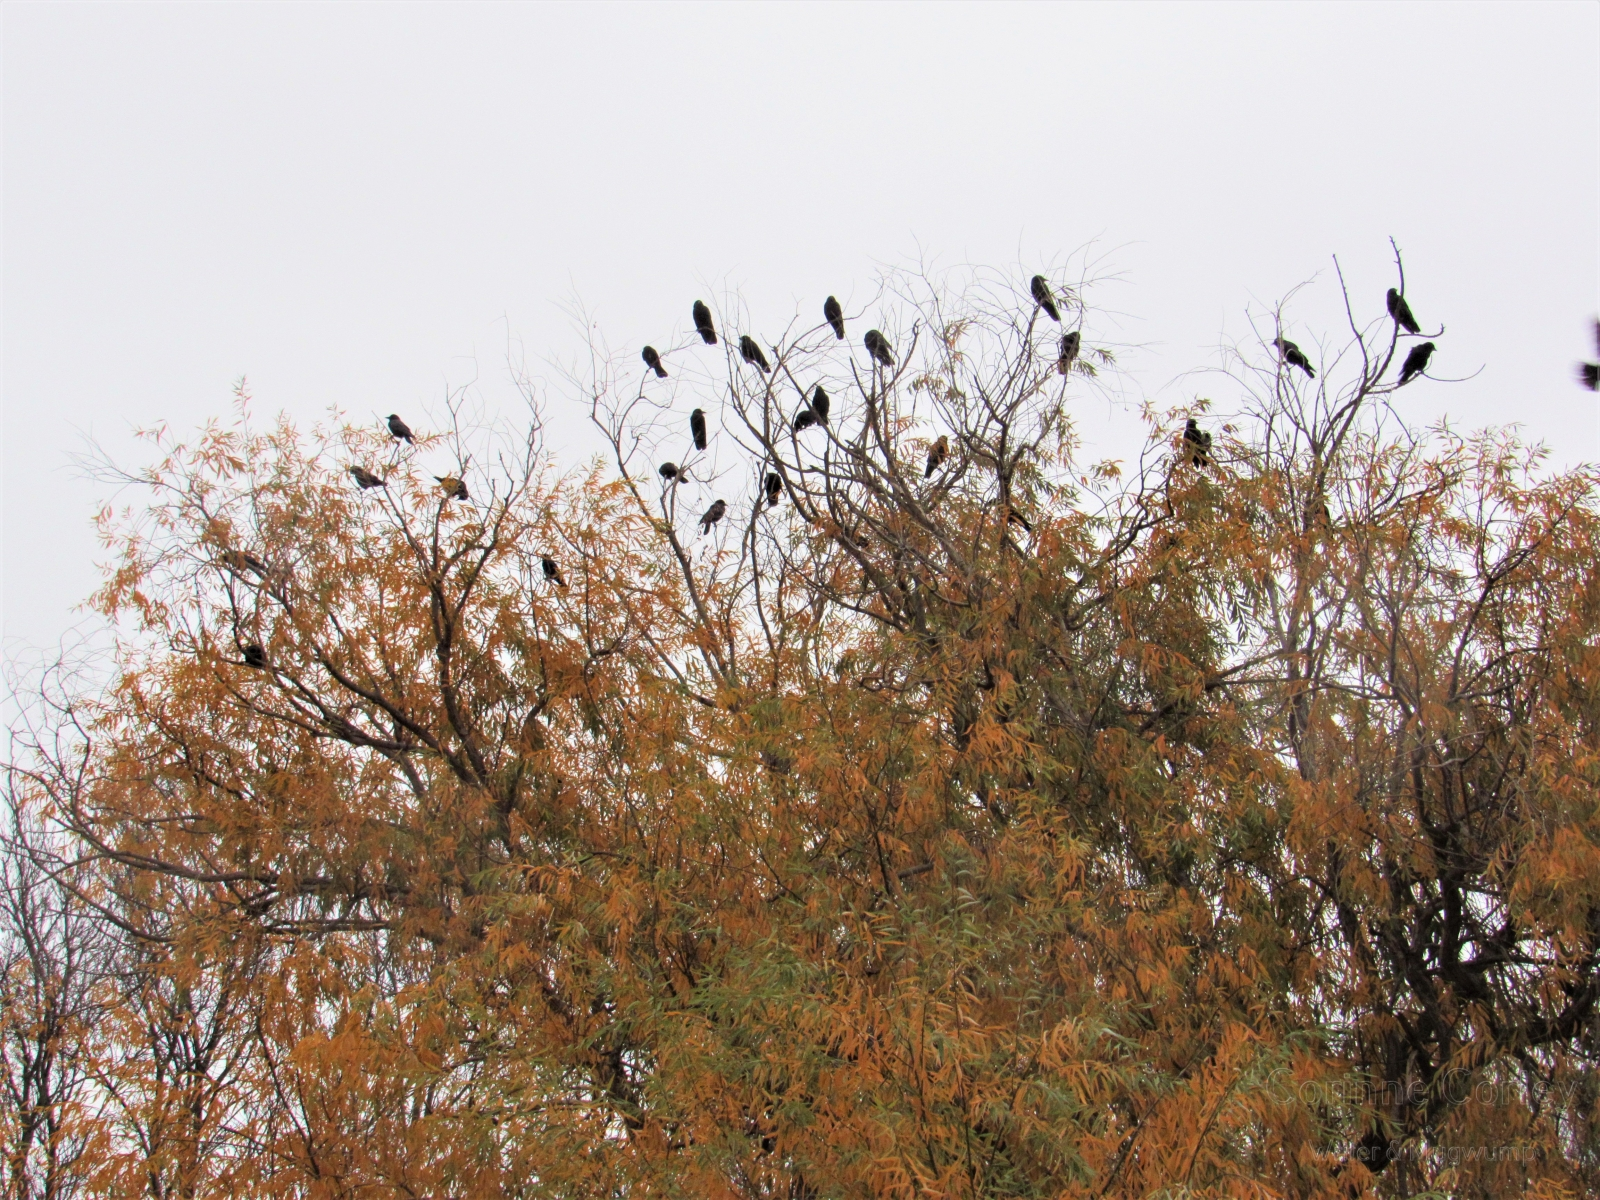 Crows-25